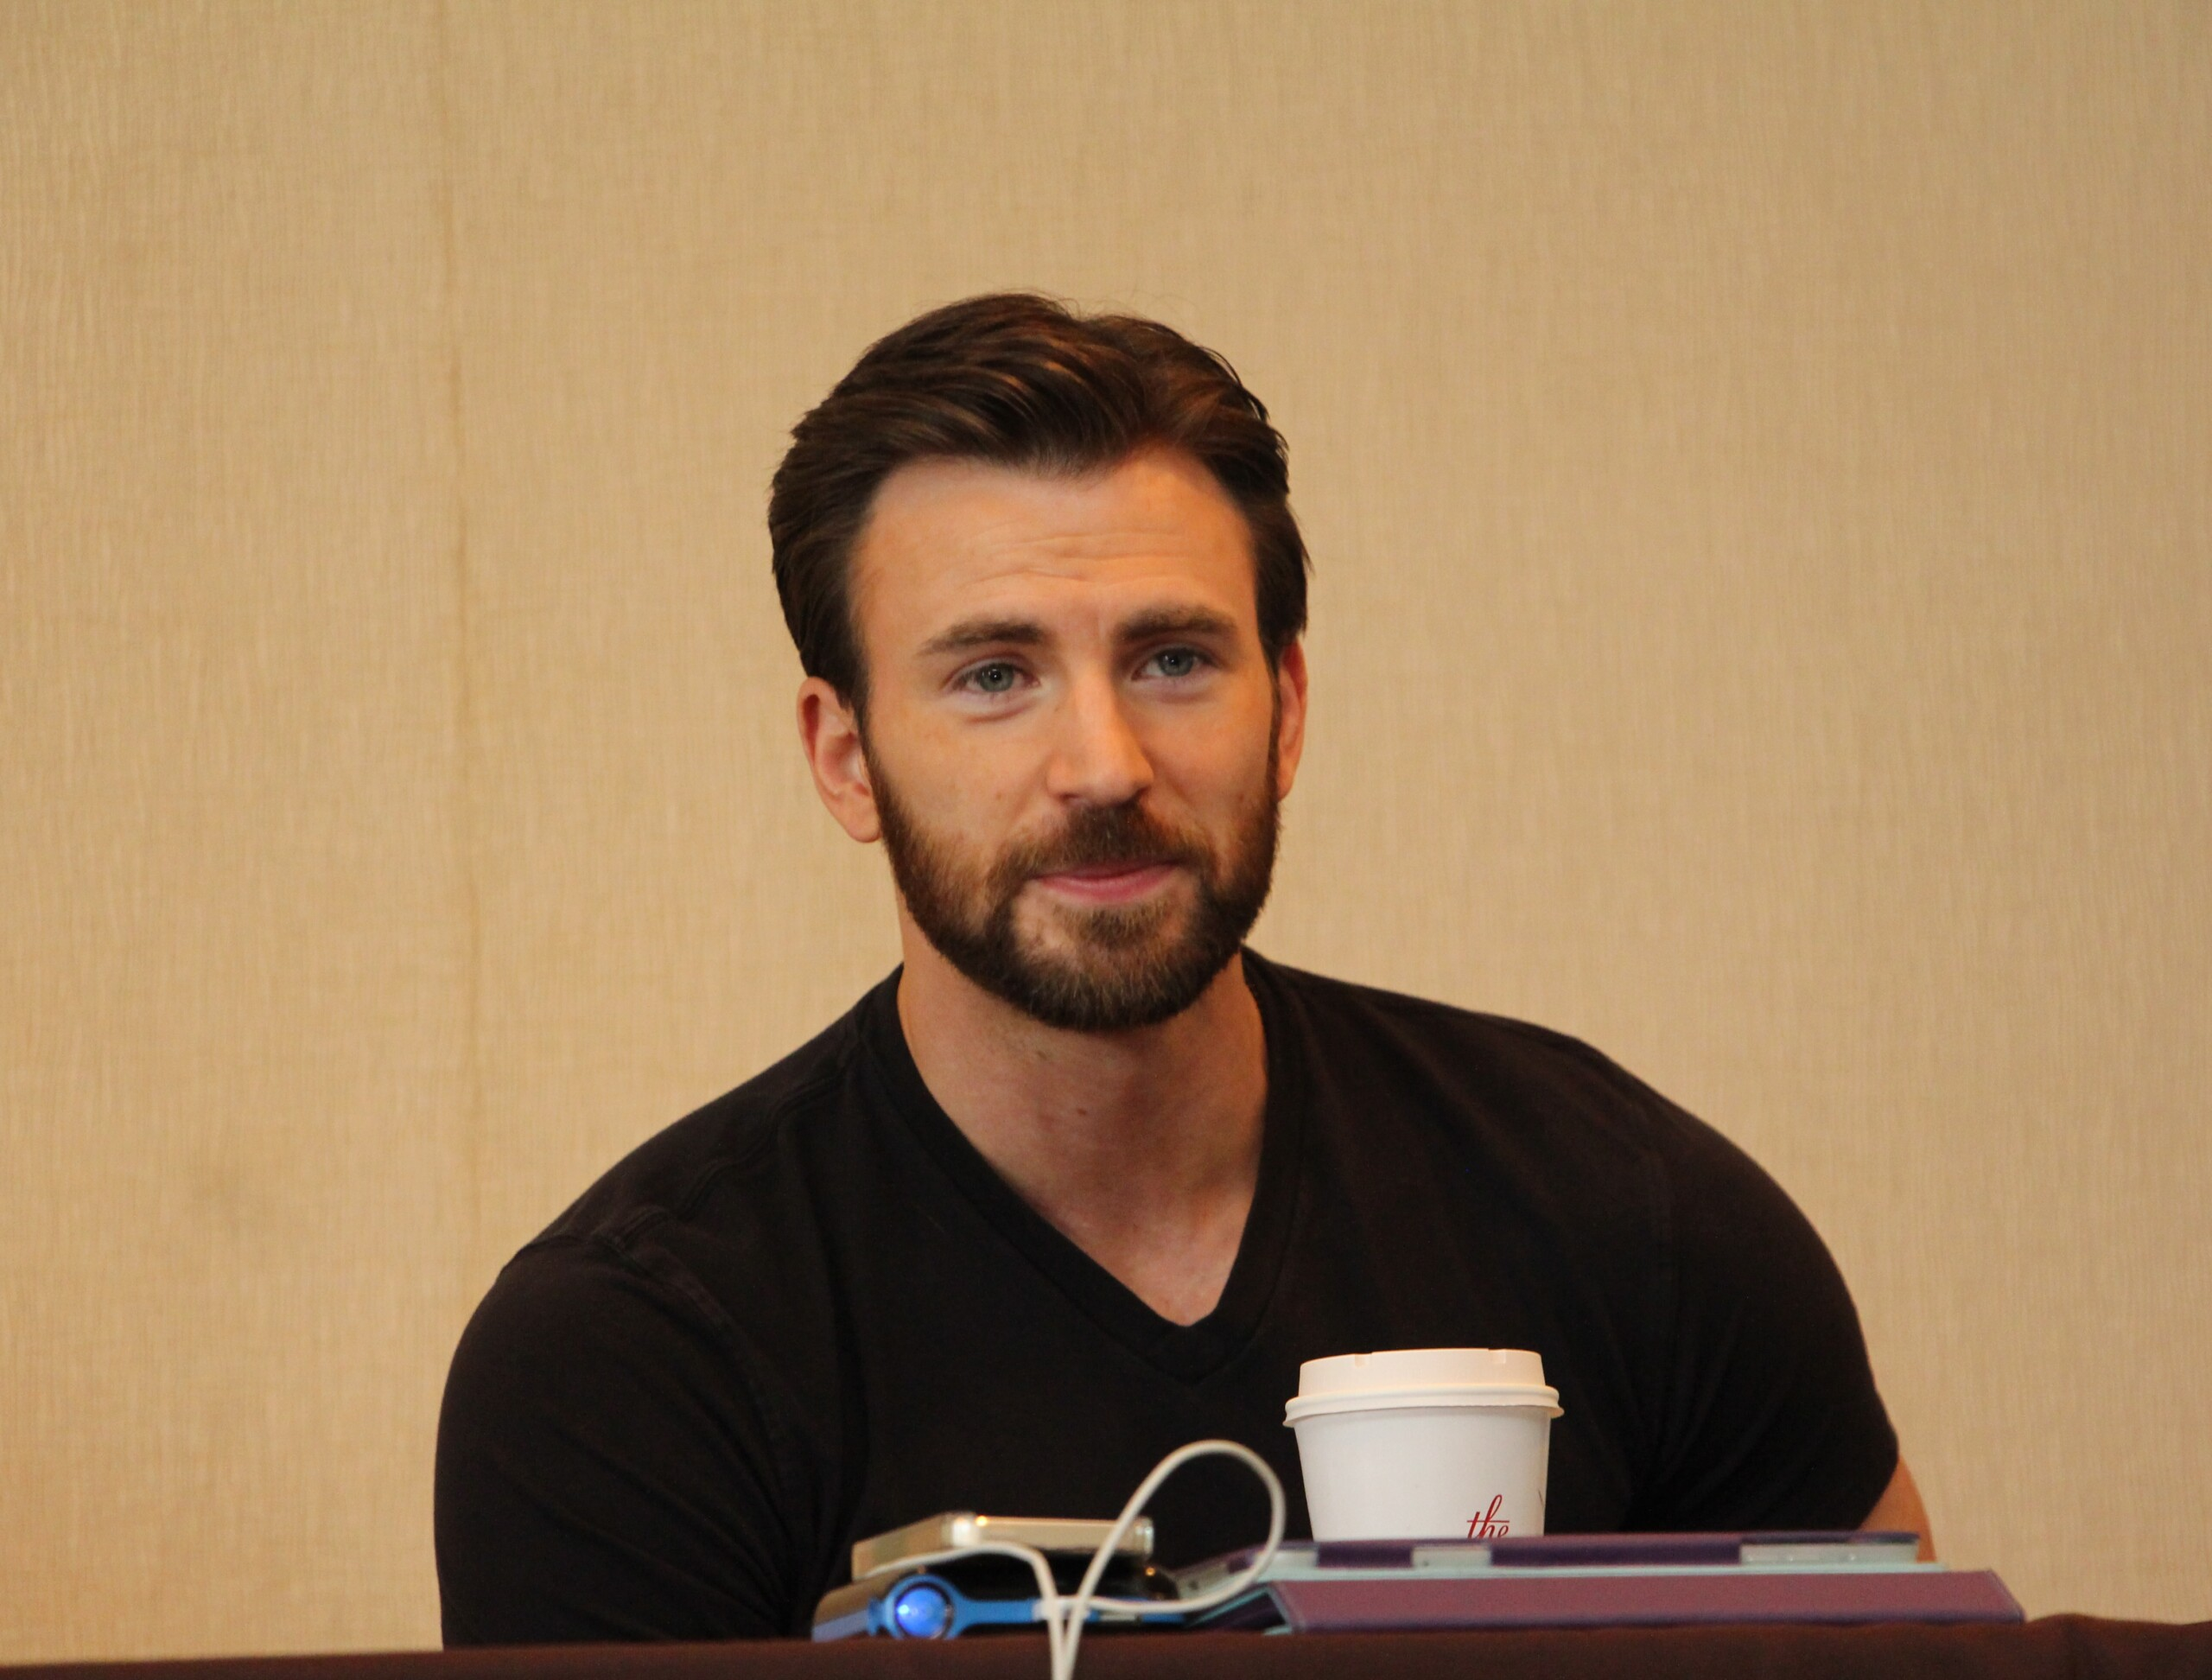 Chris Evans #CaptainAmericaEvent